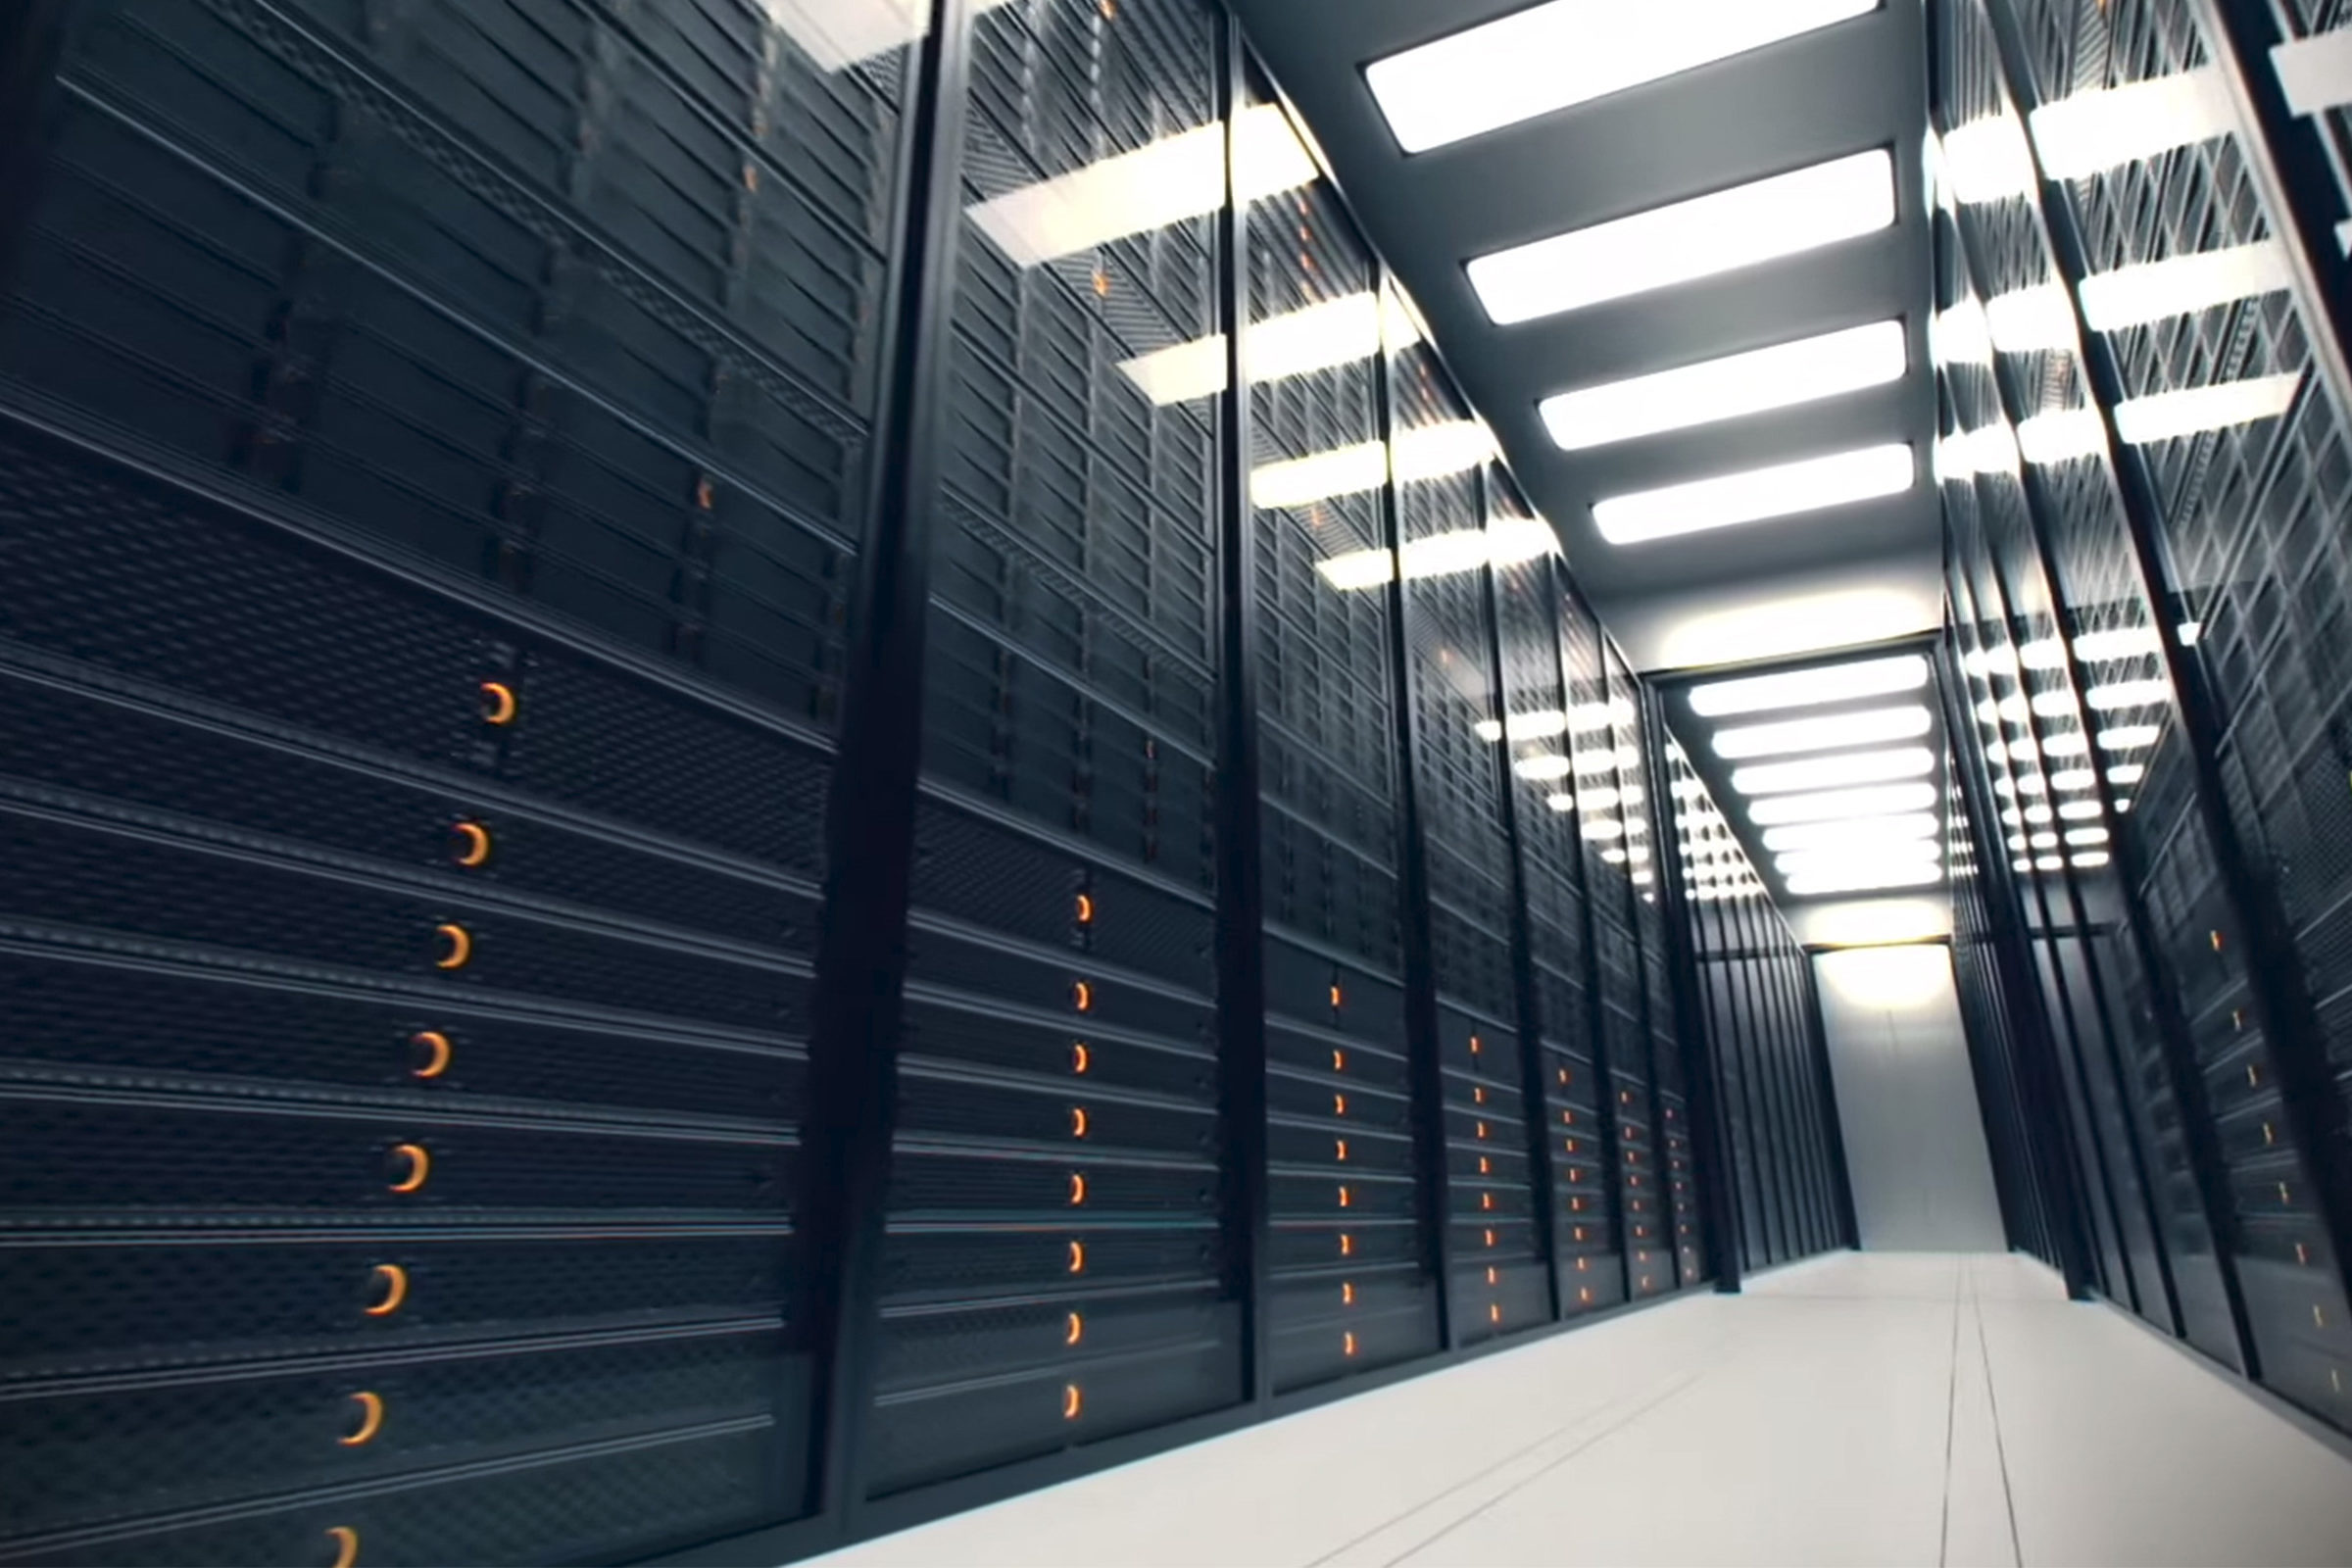 Large-scale data center